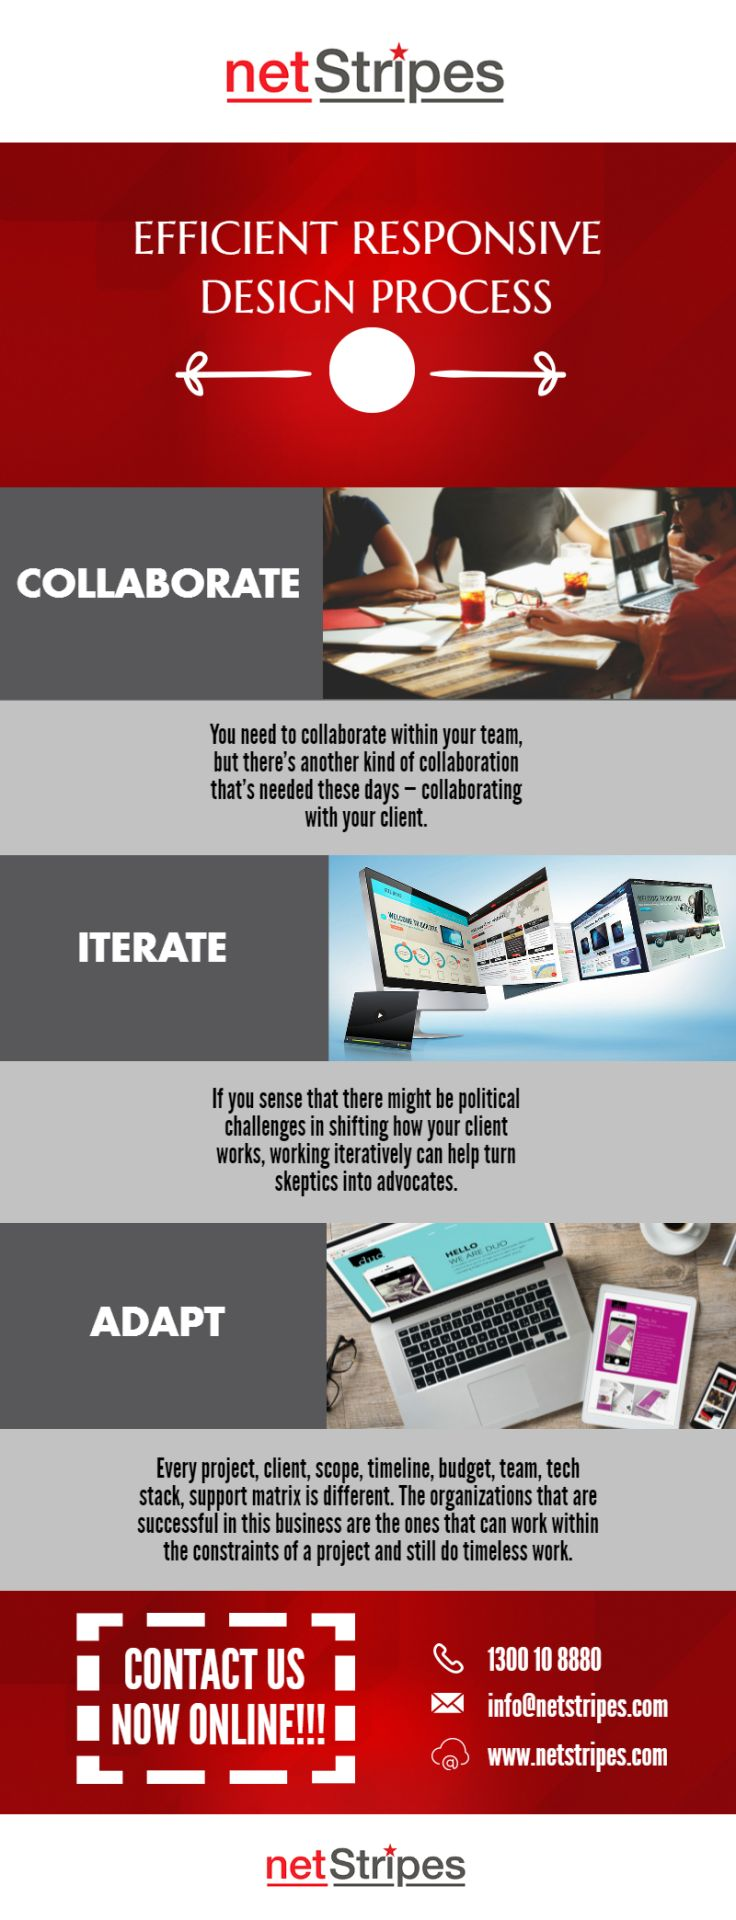 Efficient Responsive Design Process - Netstripes #WebDesignCompanySydney #AffordableWebSolutions #WebDevelopmentAgencySydney